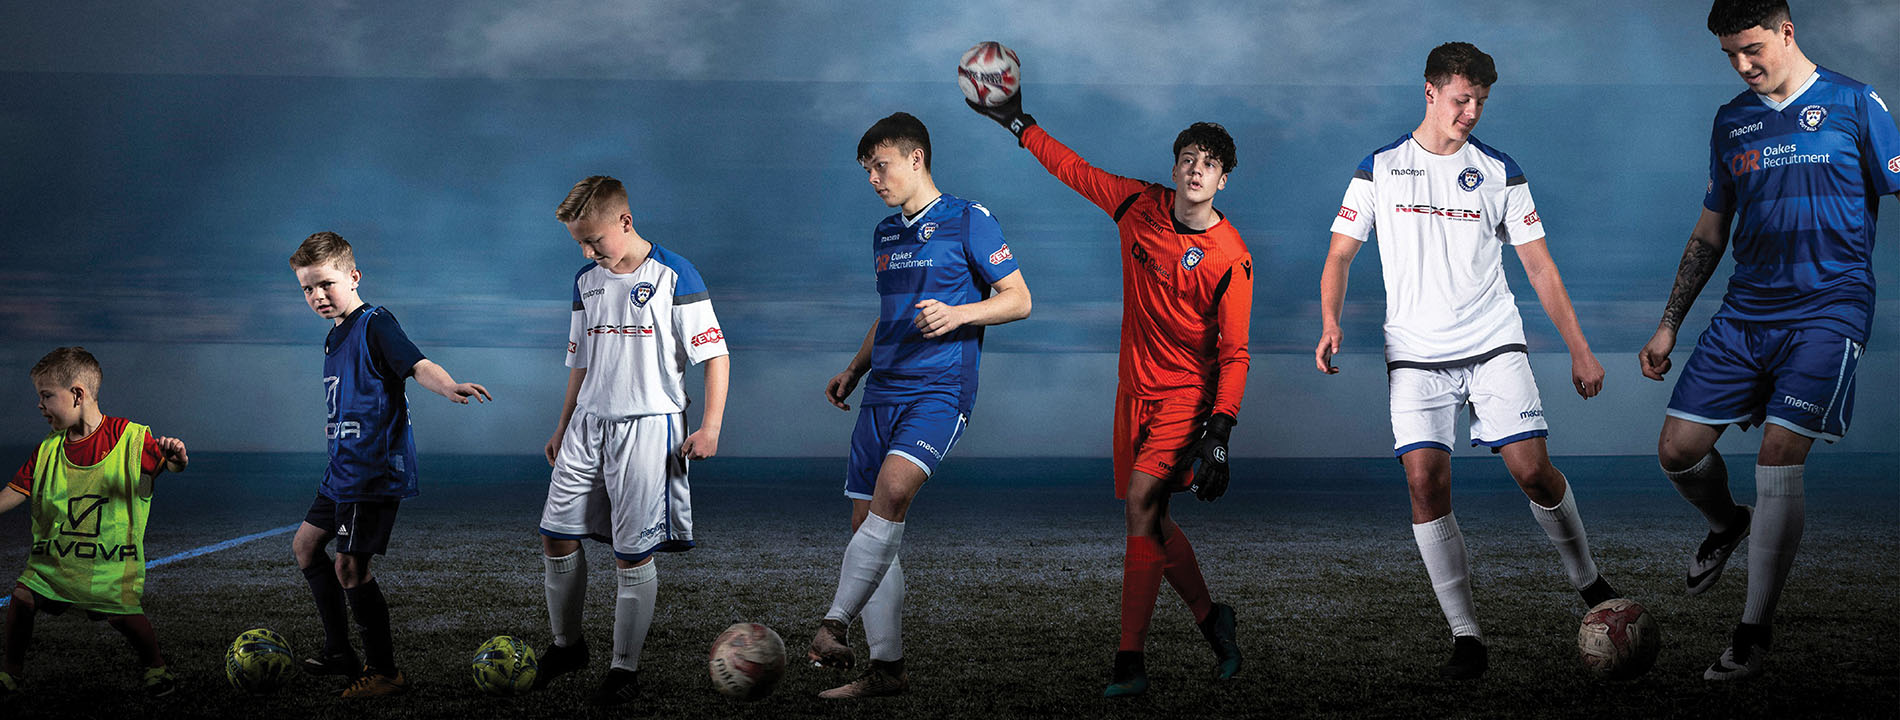 Lowestoft Town FC football Academy for 16-18 year olds run in partnership with SCL